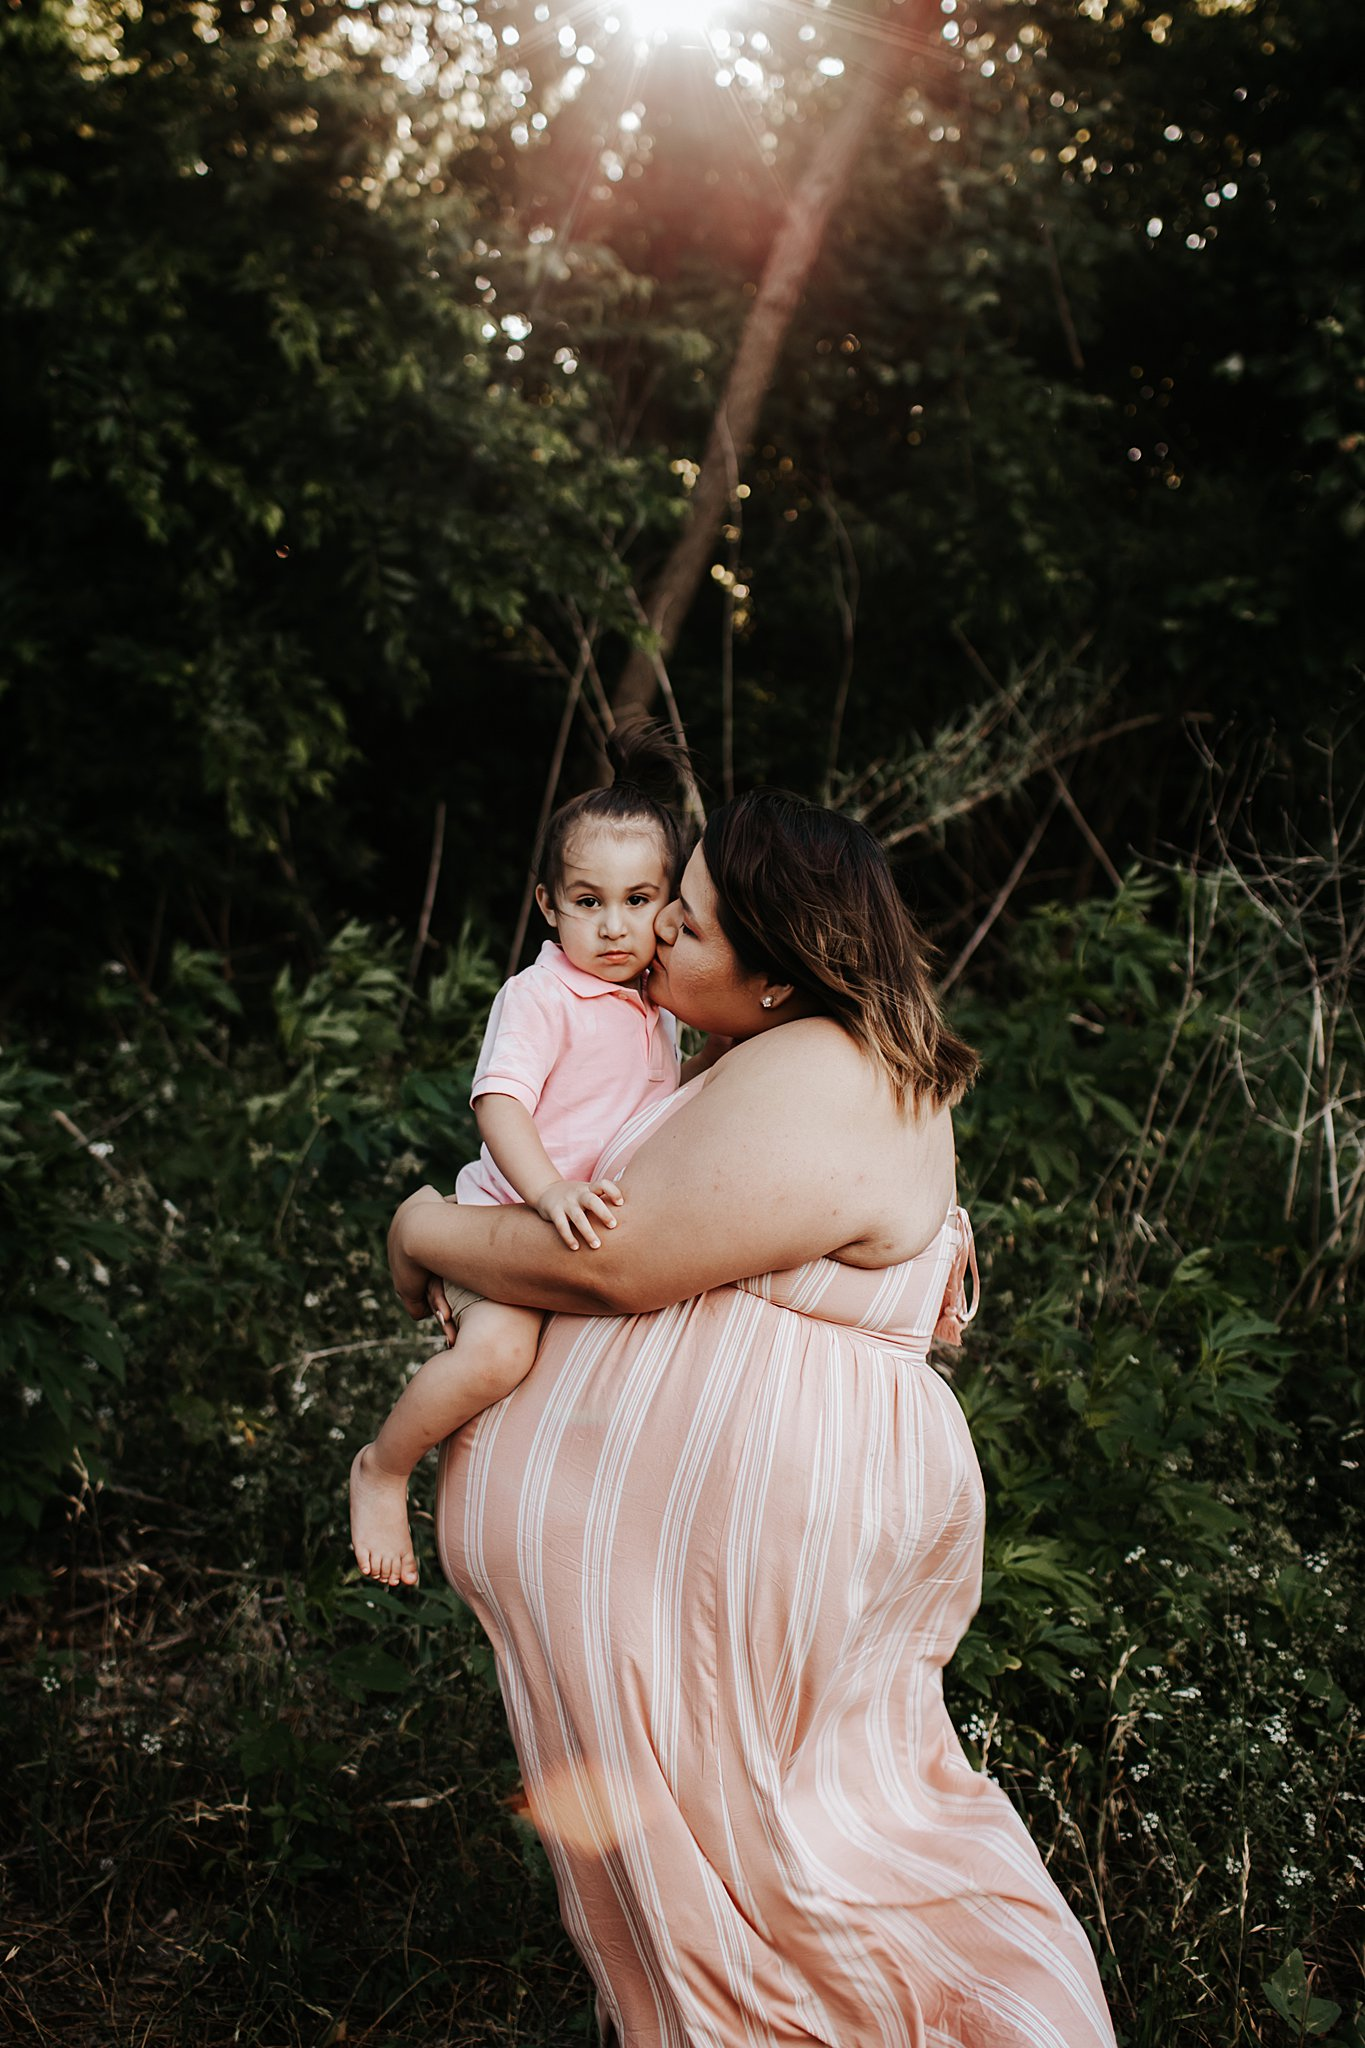 Vanny-San-Antonio-Maternity-Photographer-14_WEB.jpg